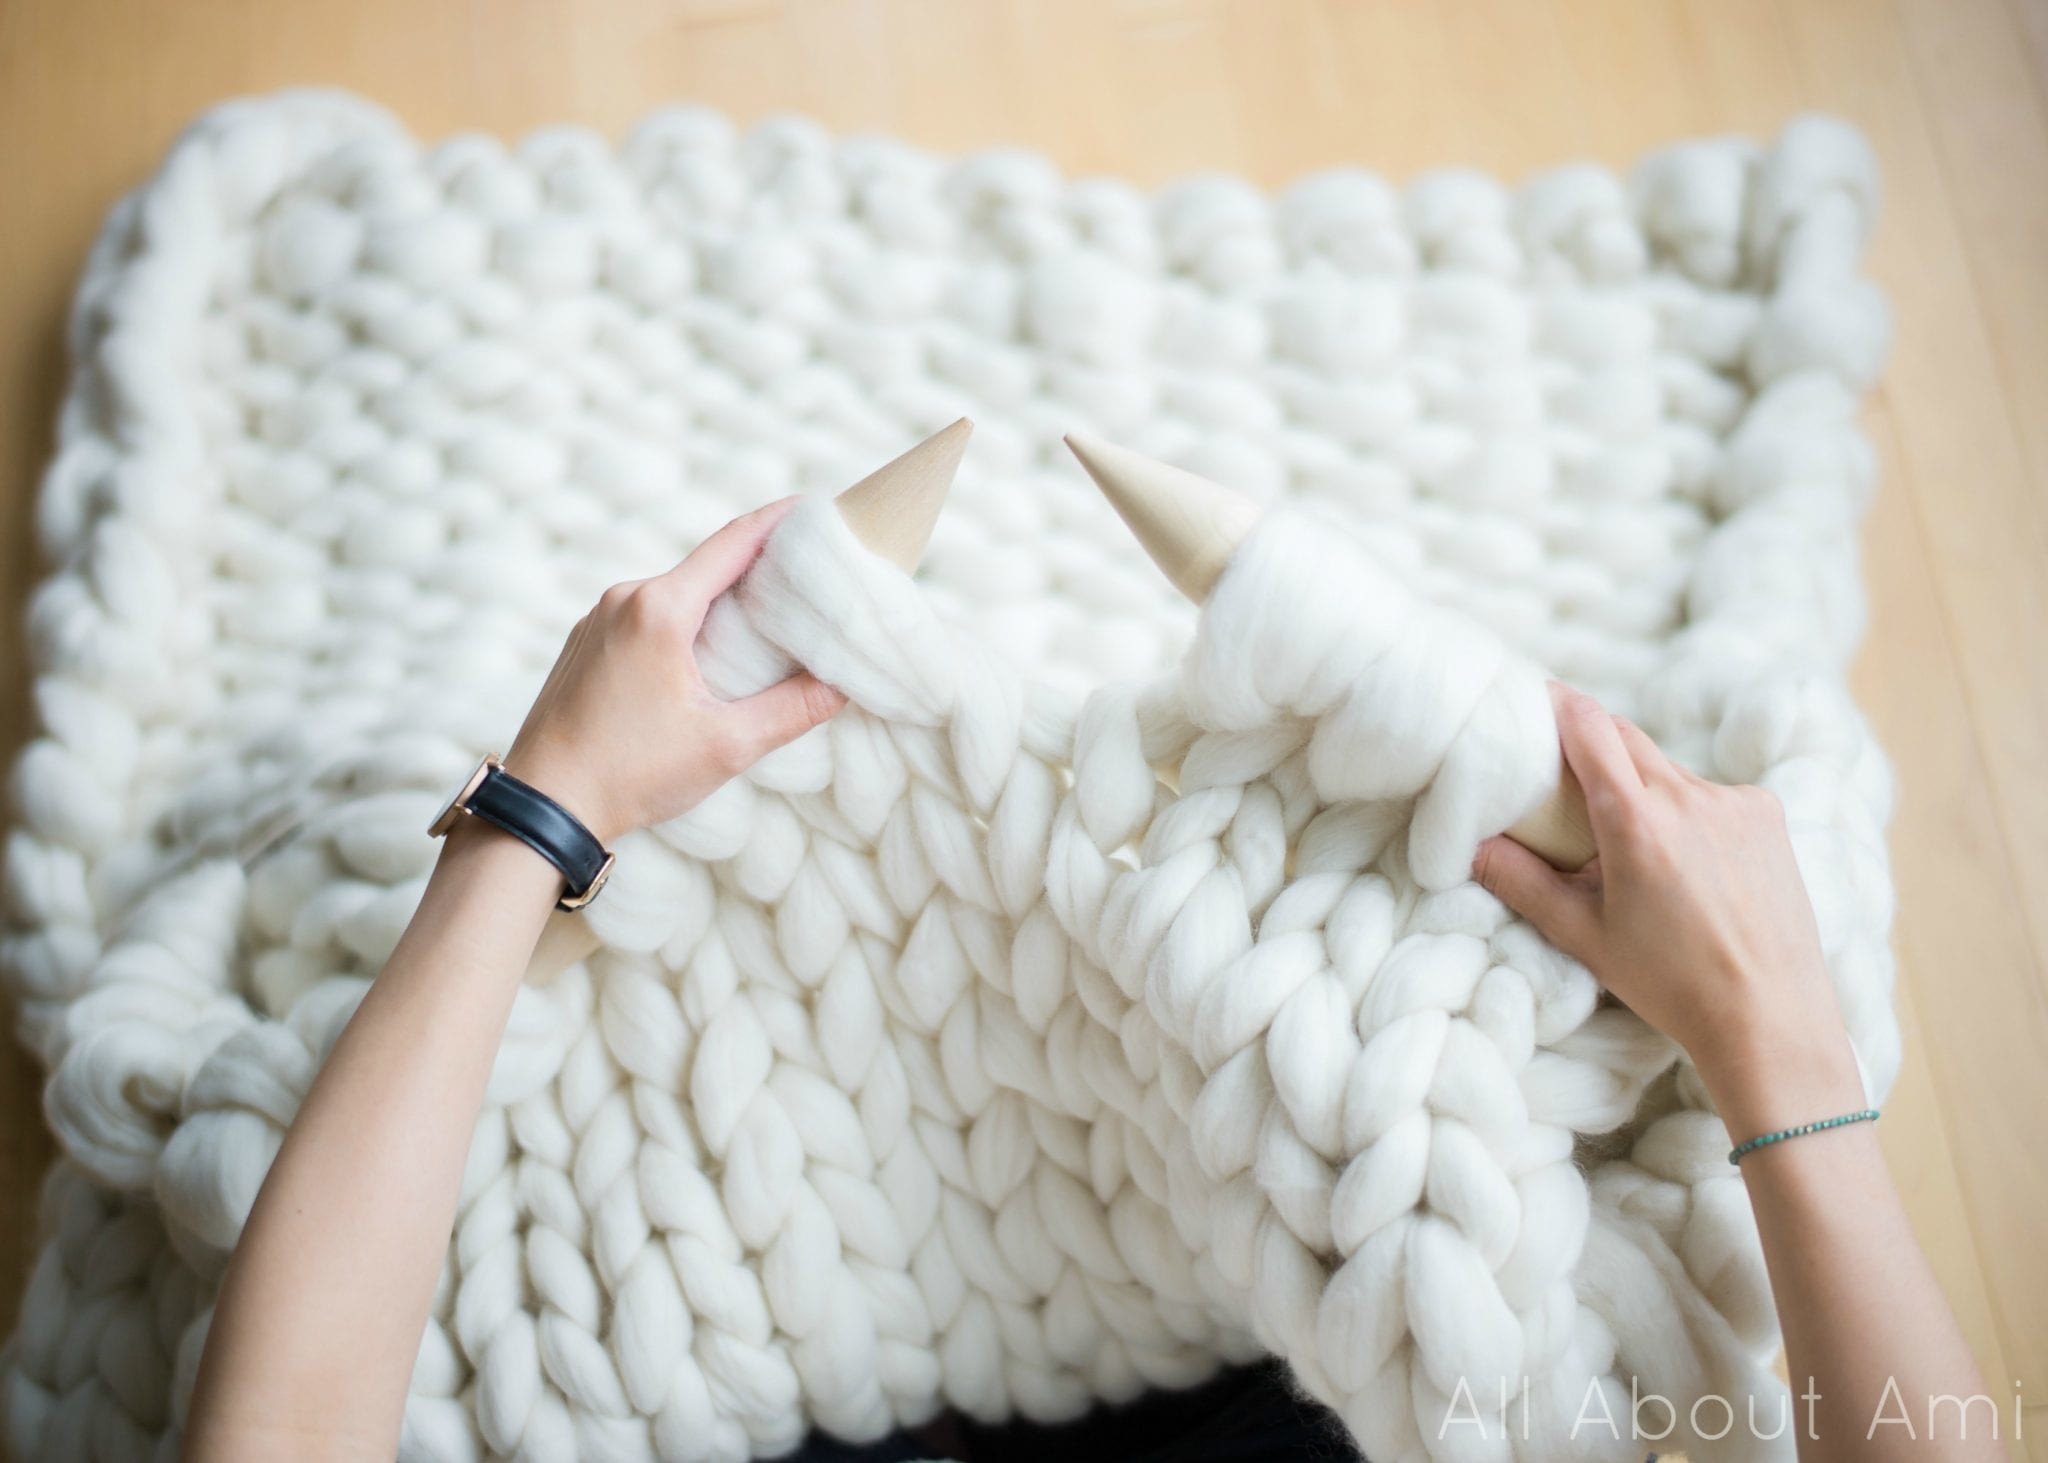 Large Knit Blanket Inspirational Extreme Knitted Blanket All About Ami Of New 40 Images Large Knit Blanket